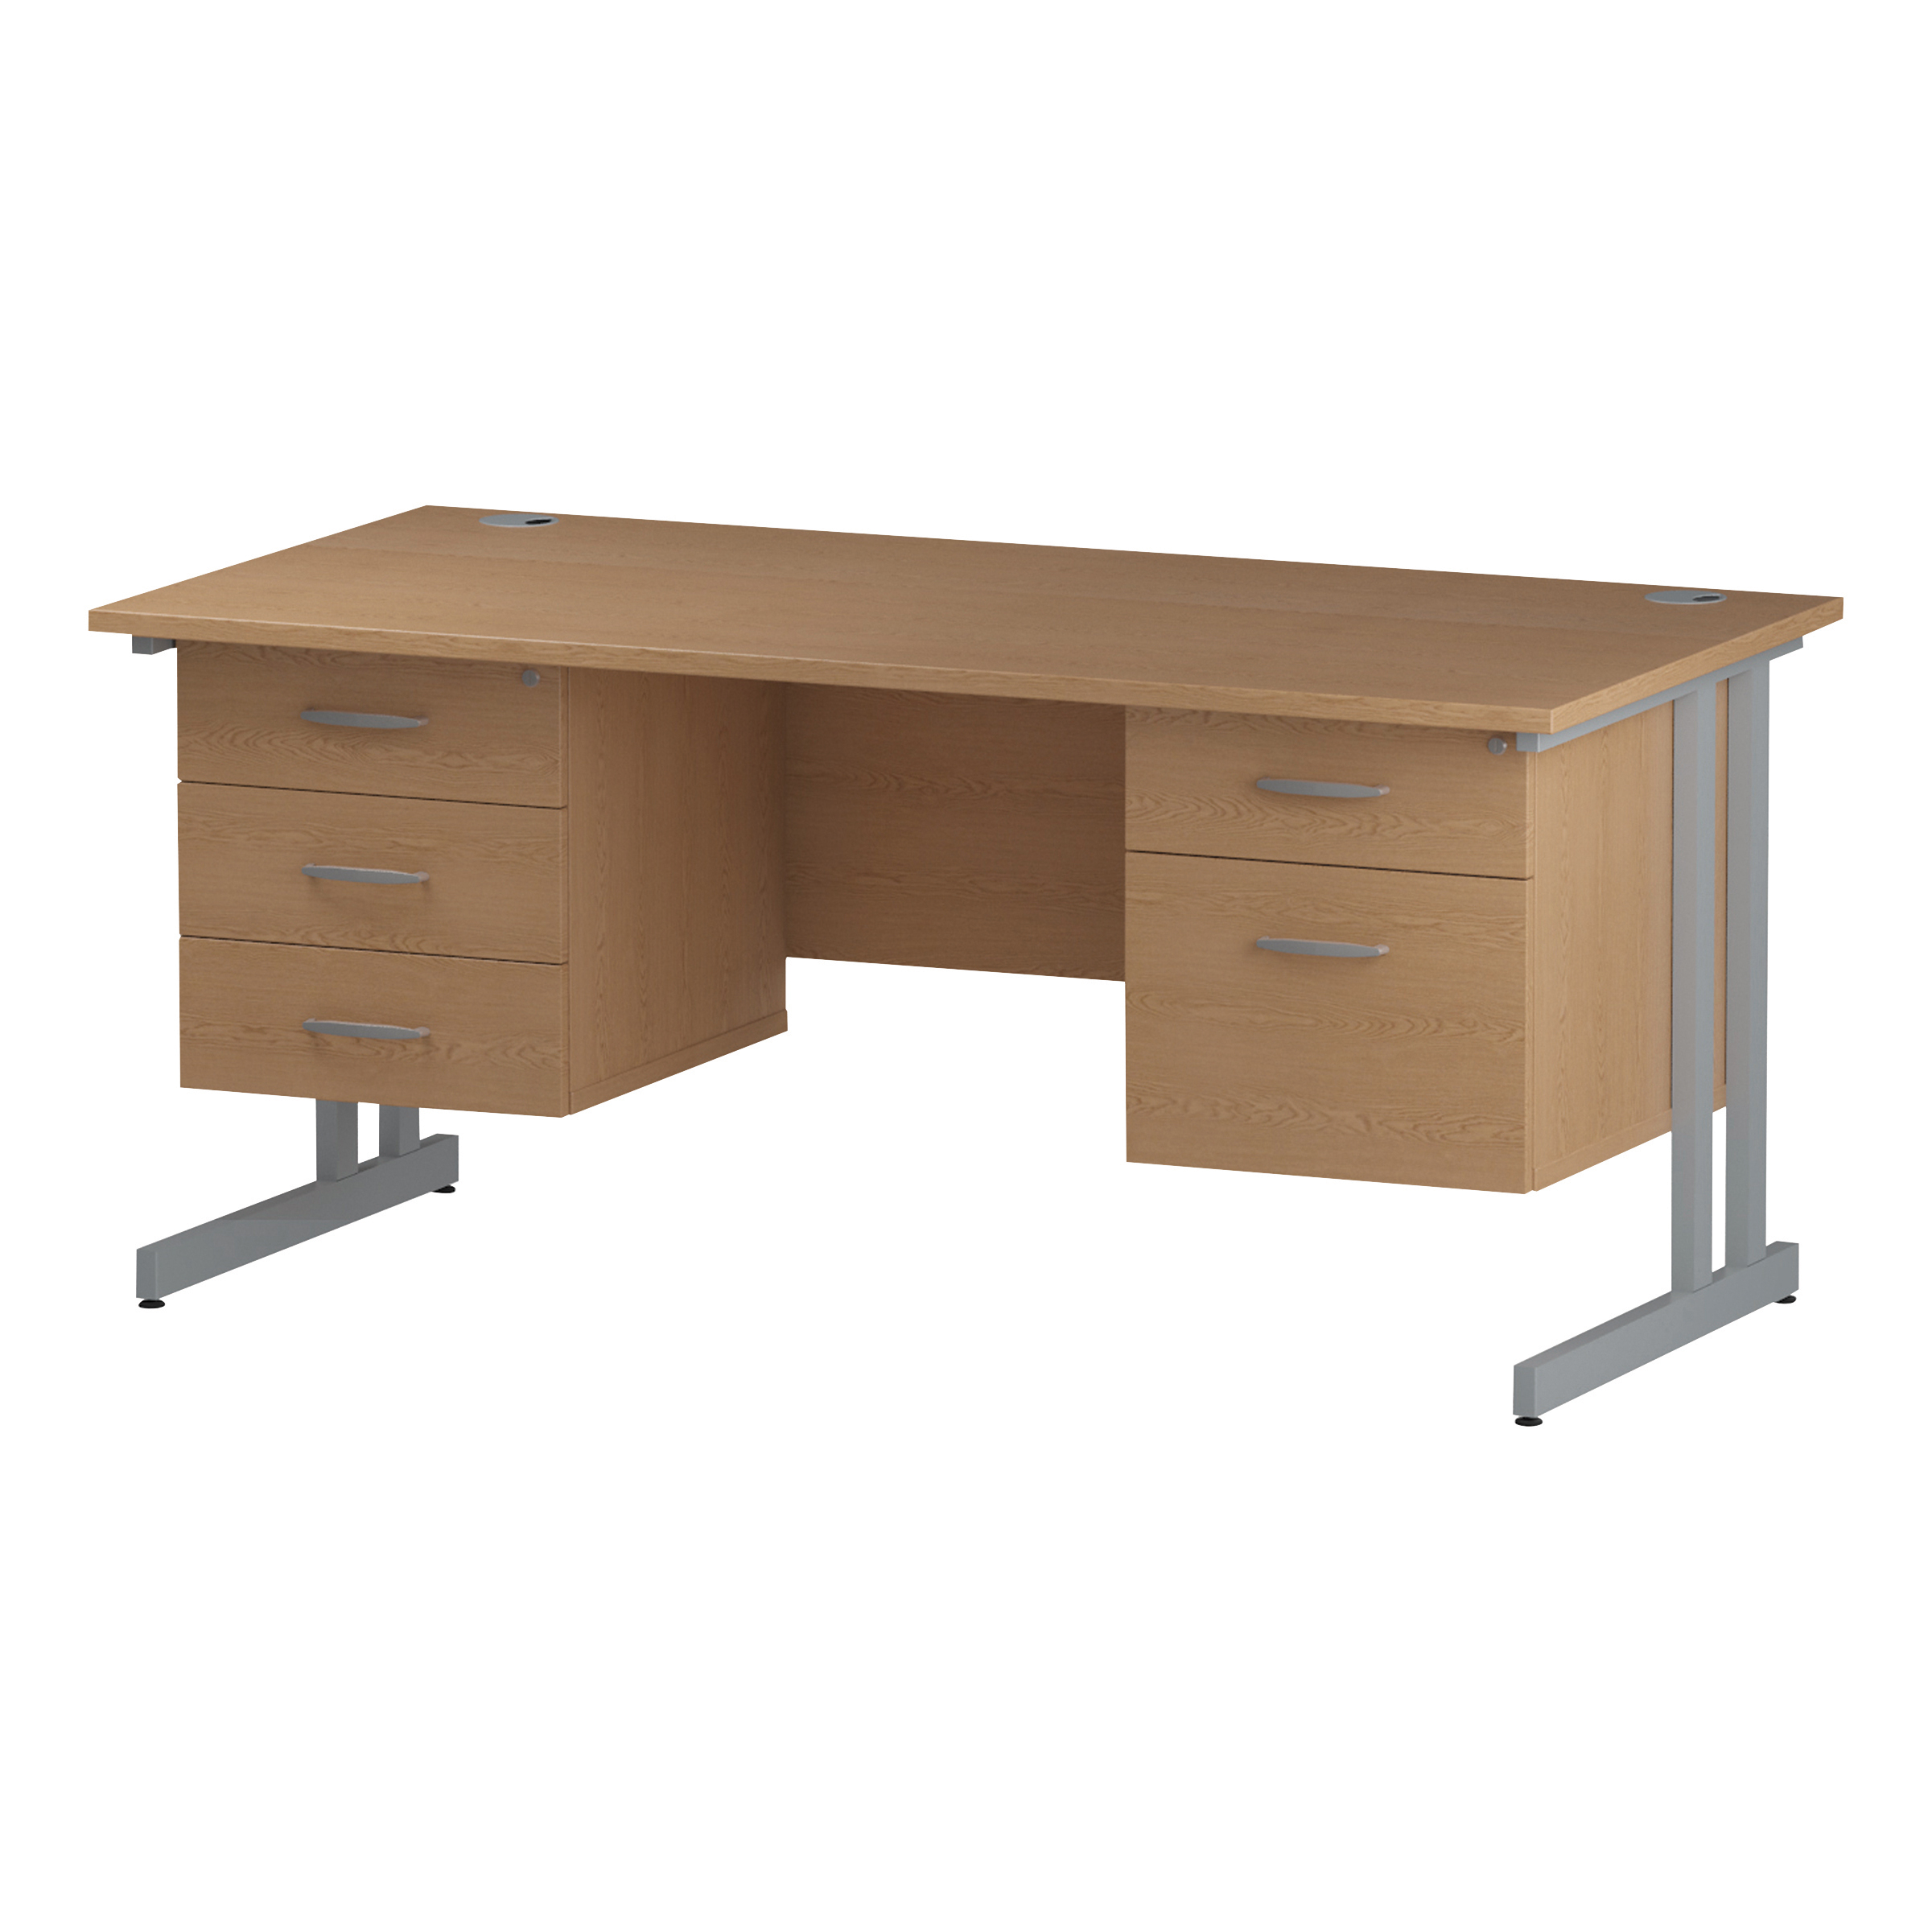 Trexus Rectangular Desk Silver Cantilever Leg 1600x800mm Double Fixed Ped 2&3 Drawers Oak Ref I002691